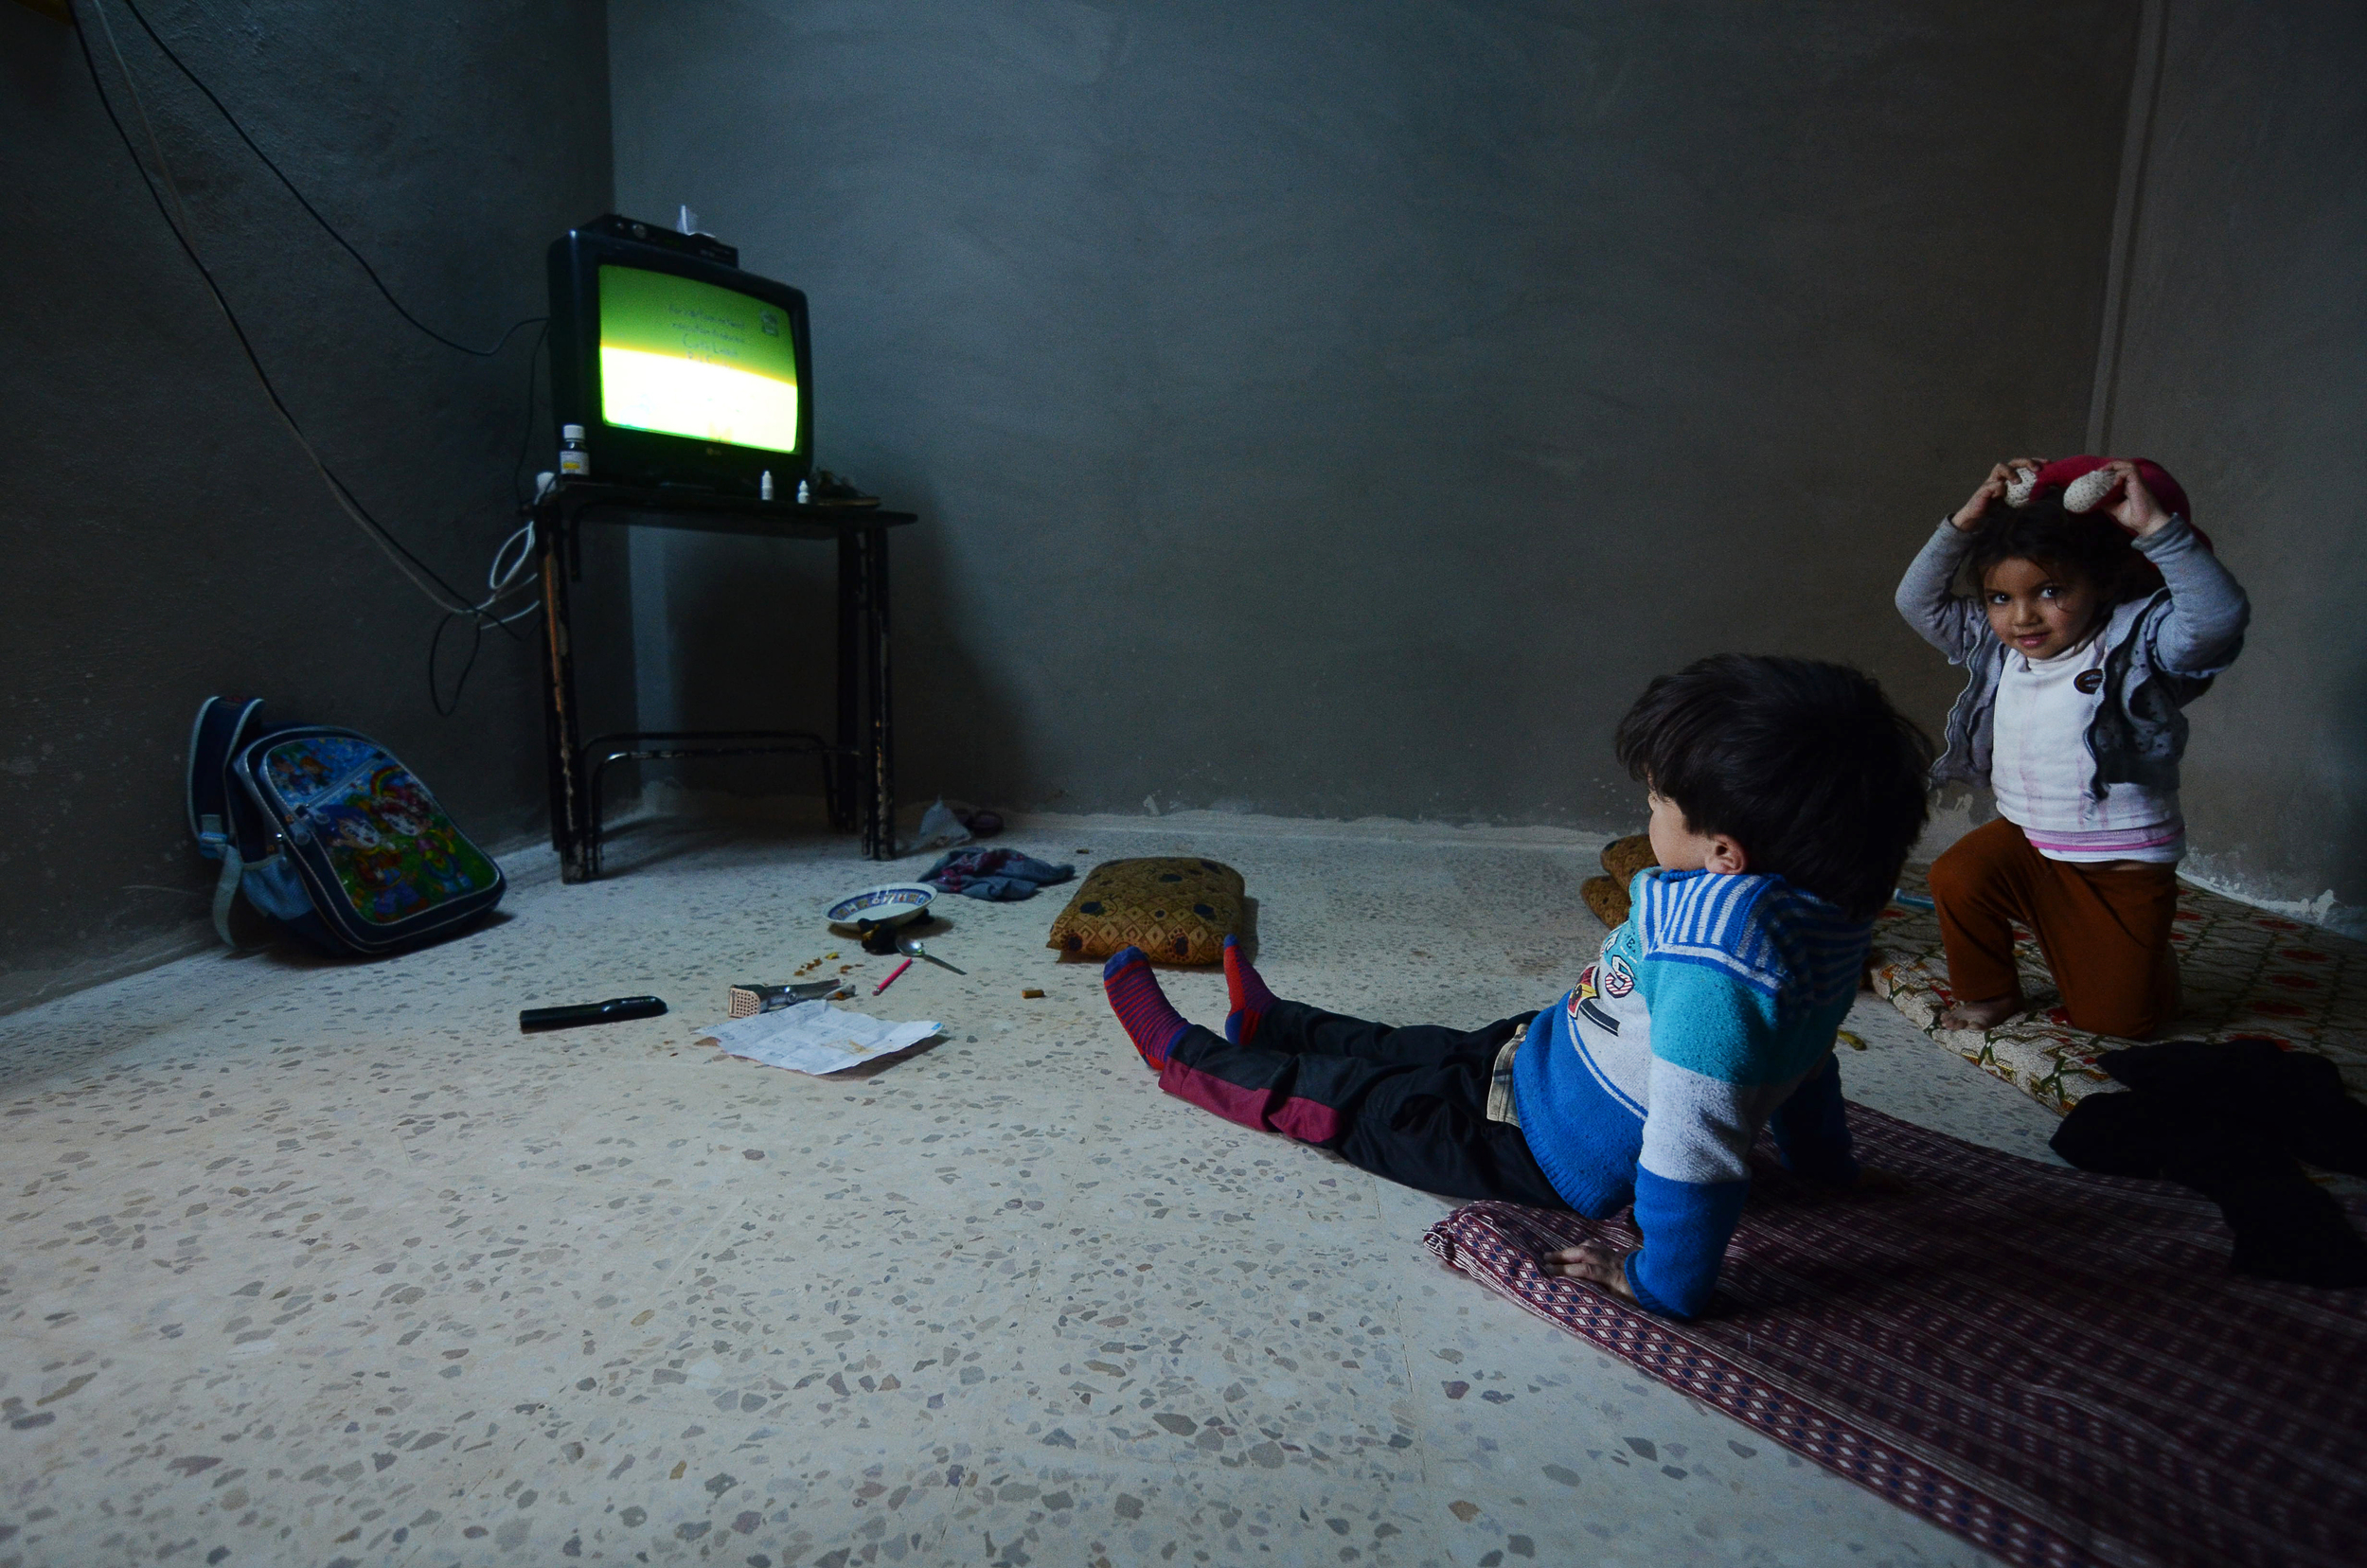 Syrian refugee children watch a TV program inside an empty room of their new home in Irbid, some 50 miles north of Jordan's capital Amman. March 2015.